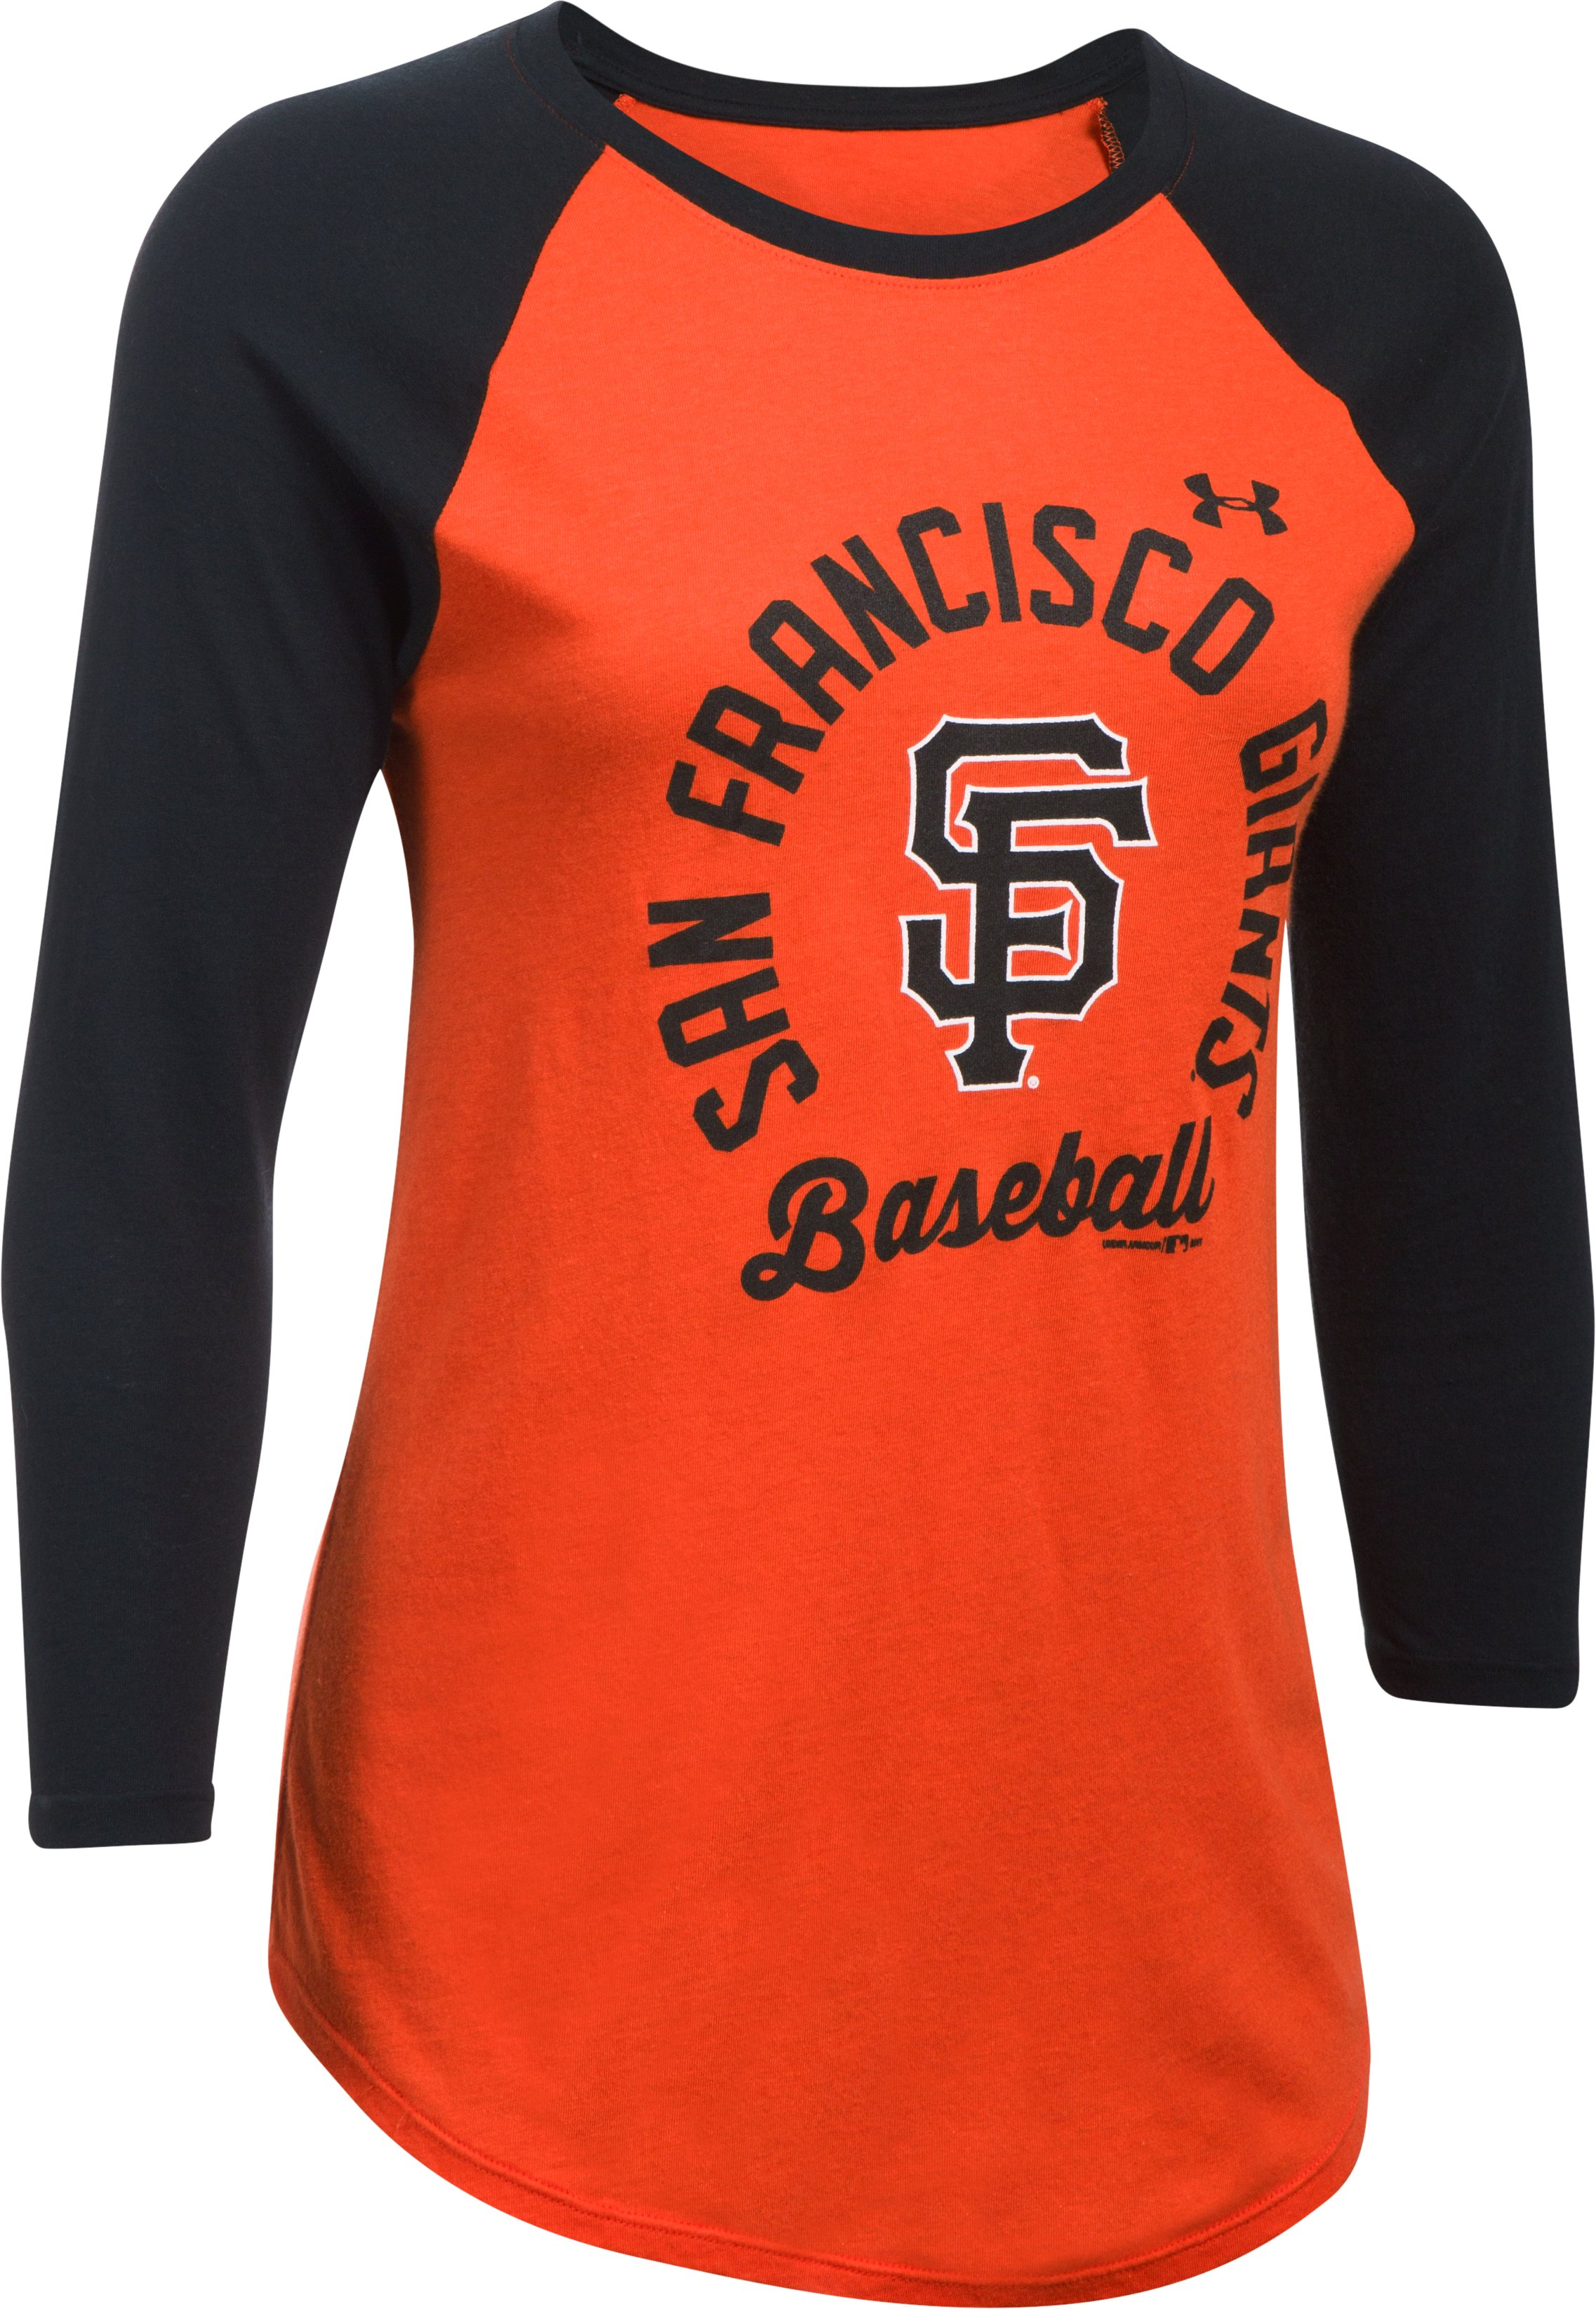 Women's San Francisco Giants ¾ Sleeve T-Shirt, Dark Orange, undefined